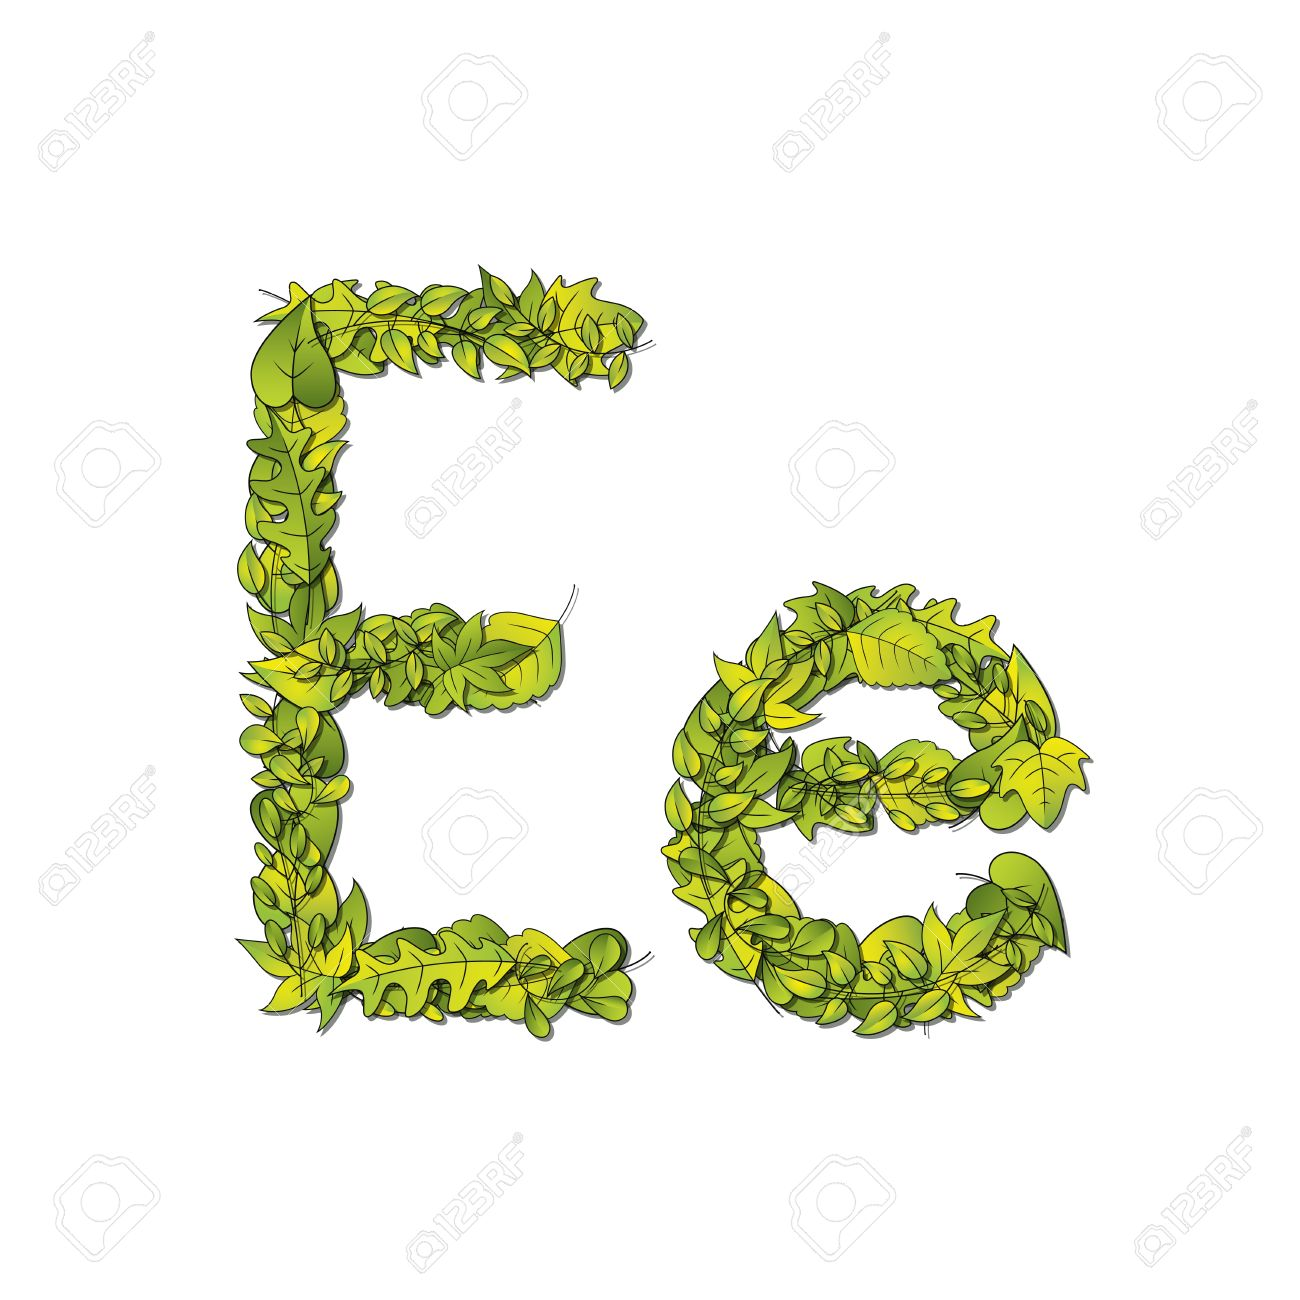 leafy storybook font depicting a letter e in upper and lower